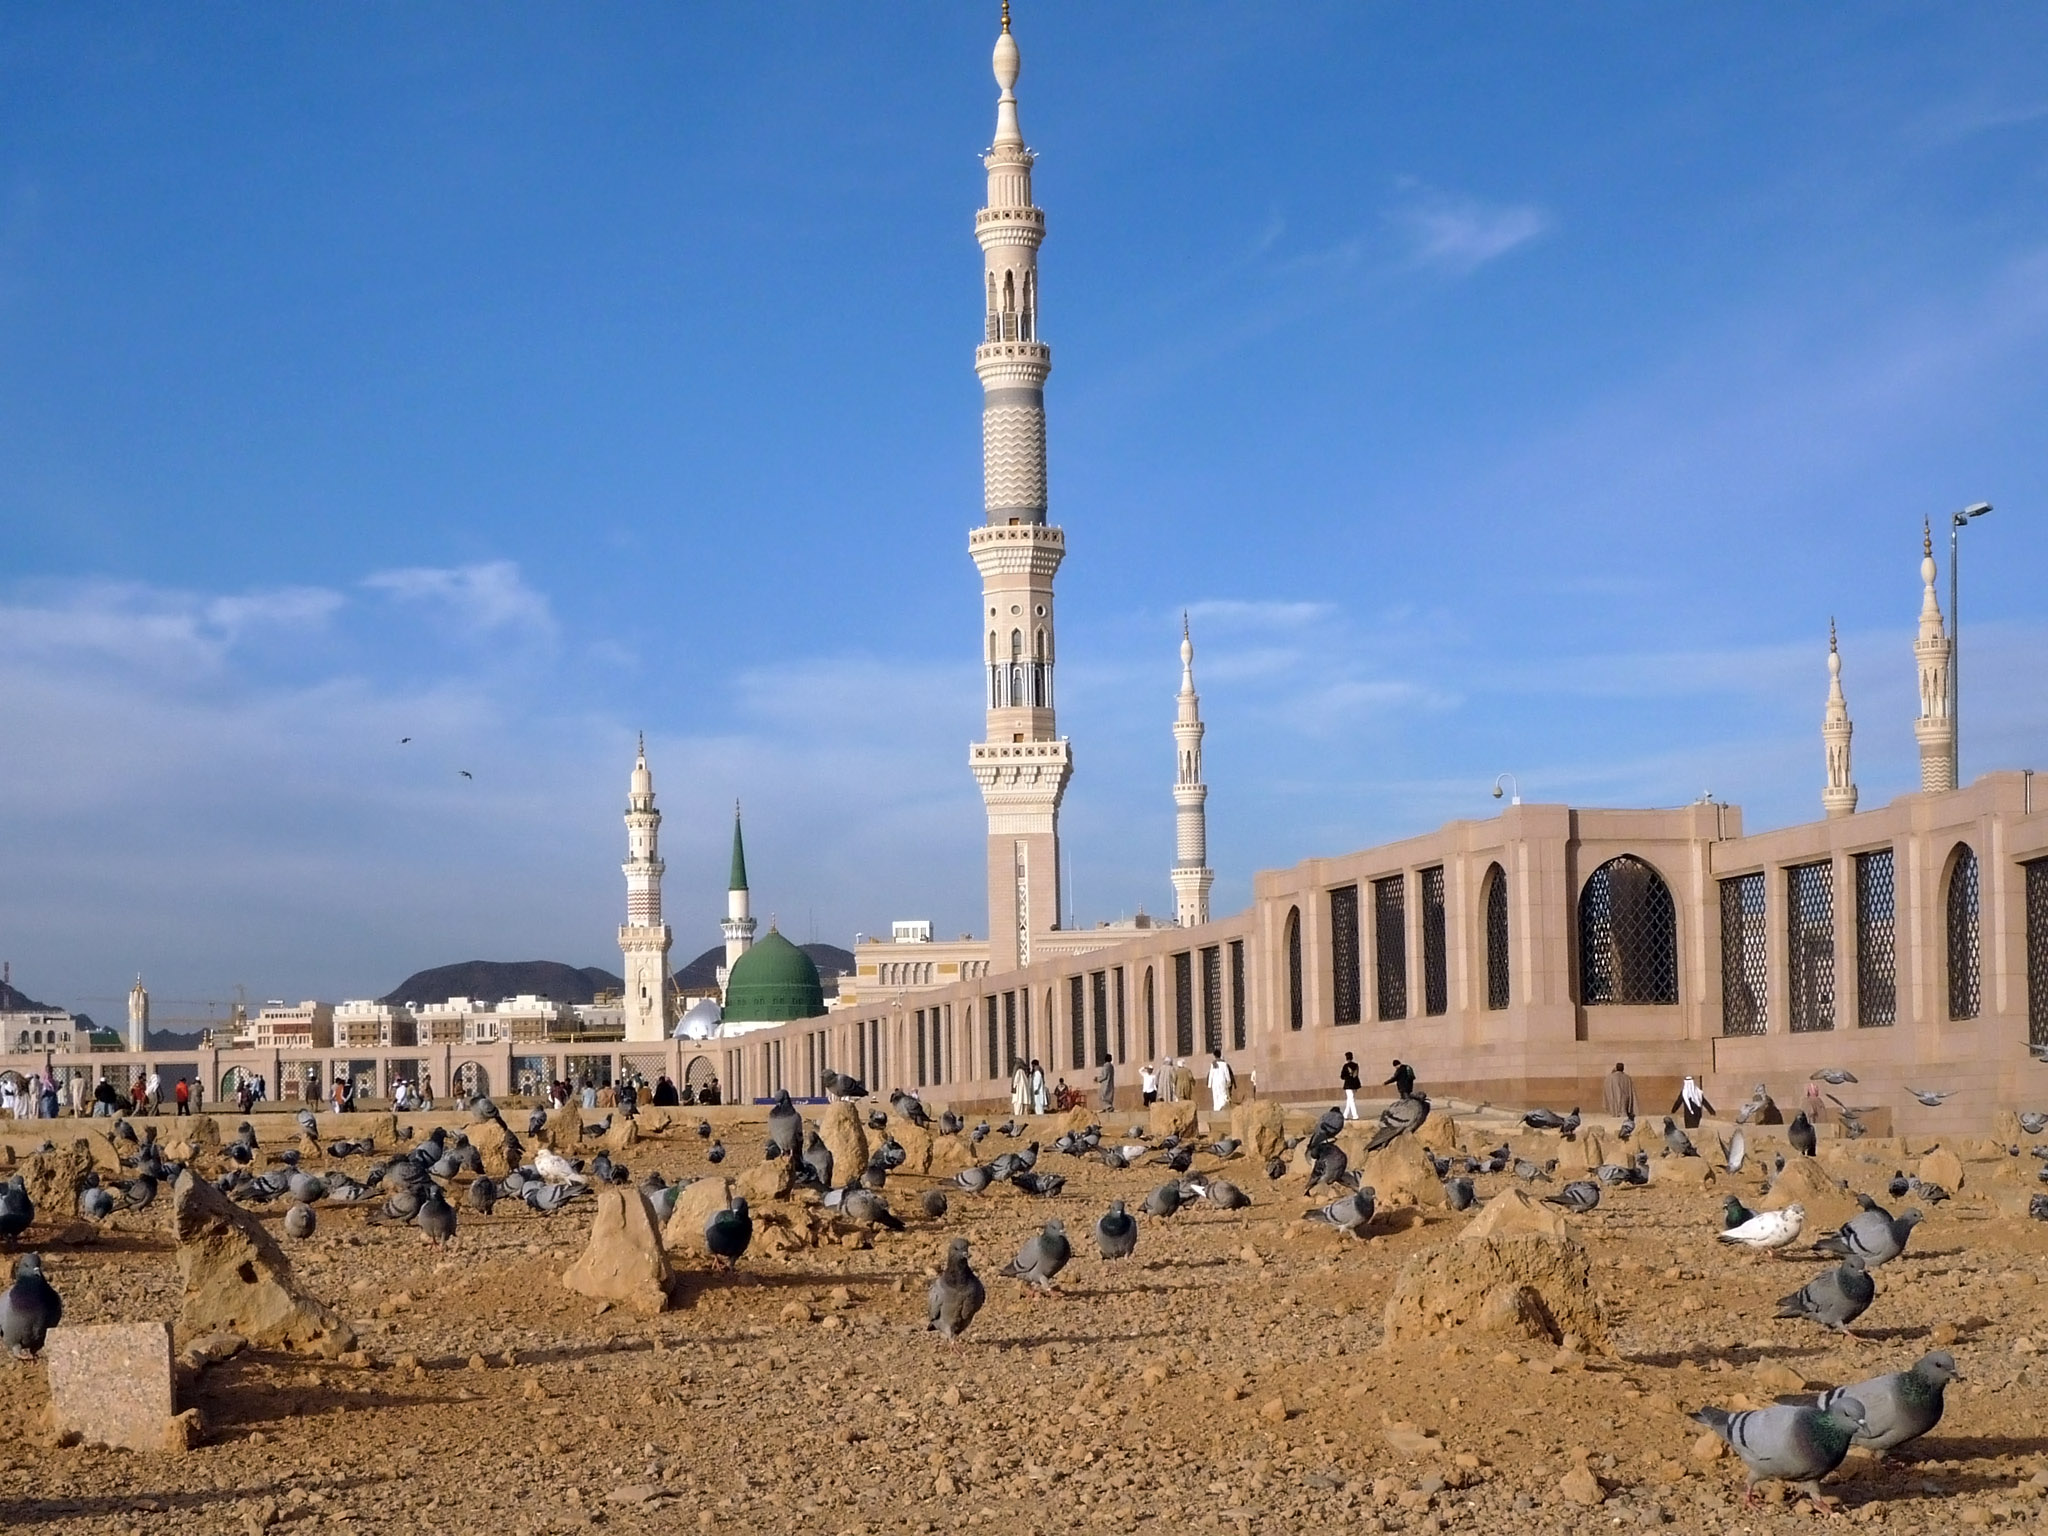 Did Imam Husayn leave behind a sick daughter named Fatima in Medina?